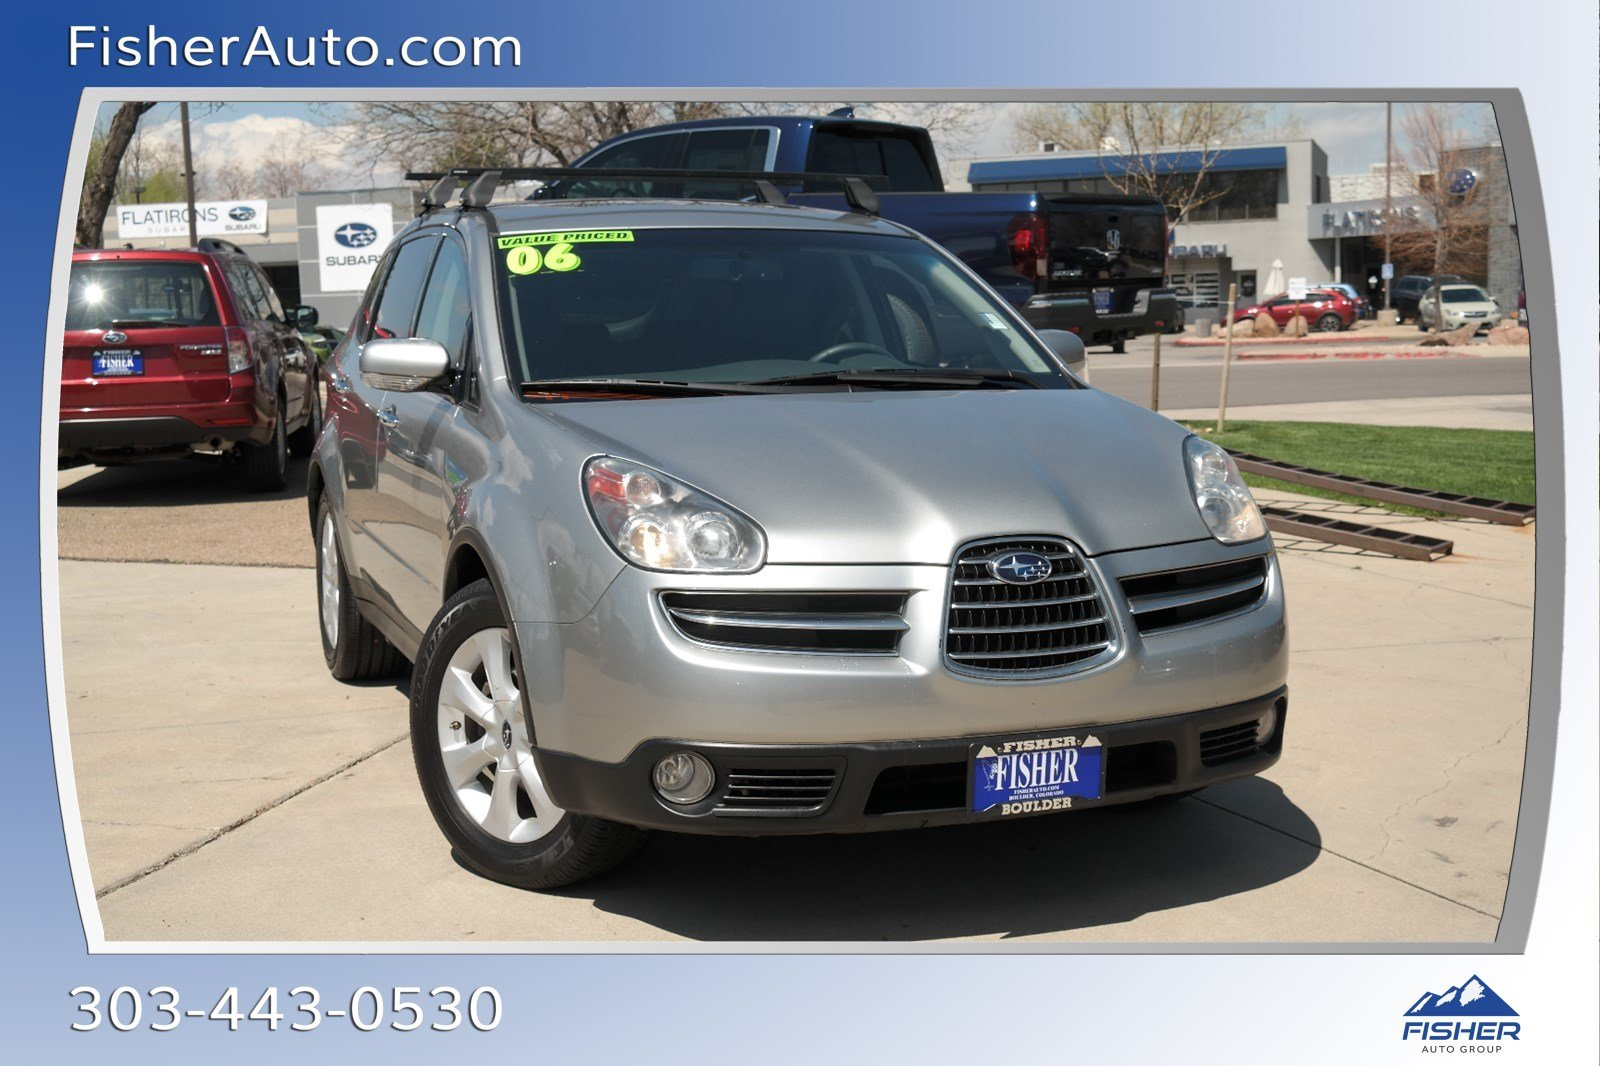 Pre-Owned 2006 Subaru B9 Tribeca 5-Pass Ltd Gray Int